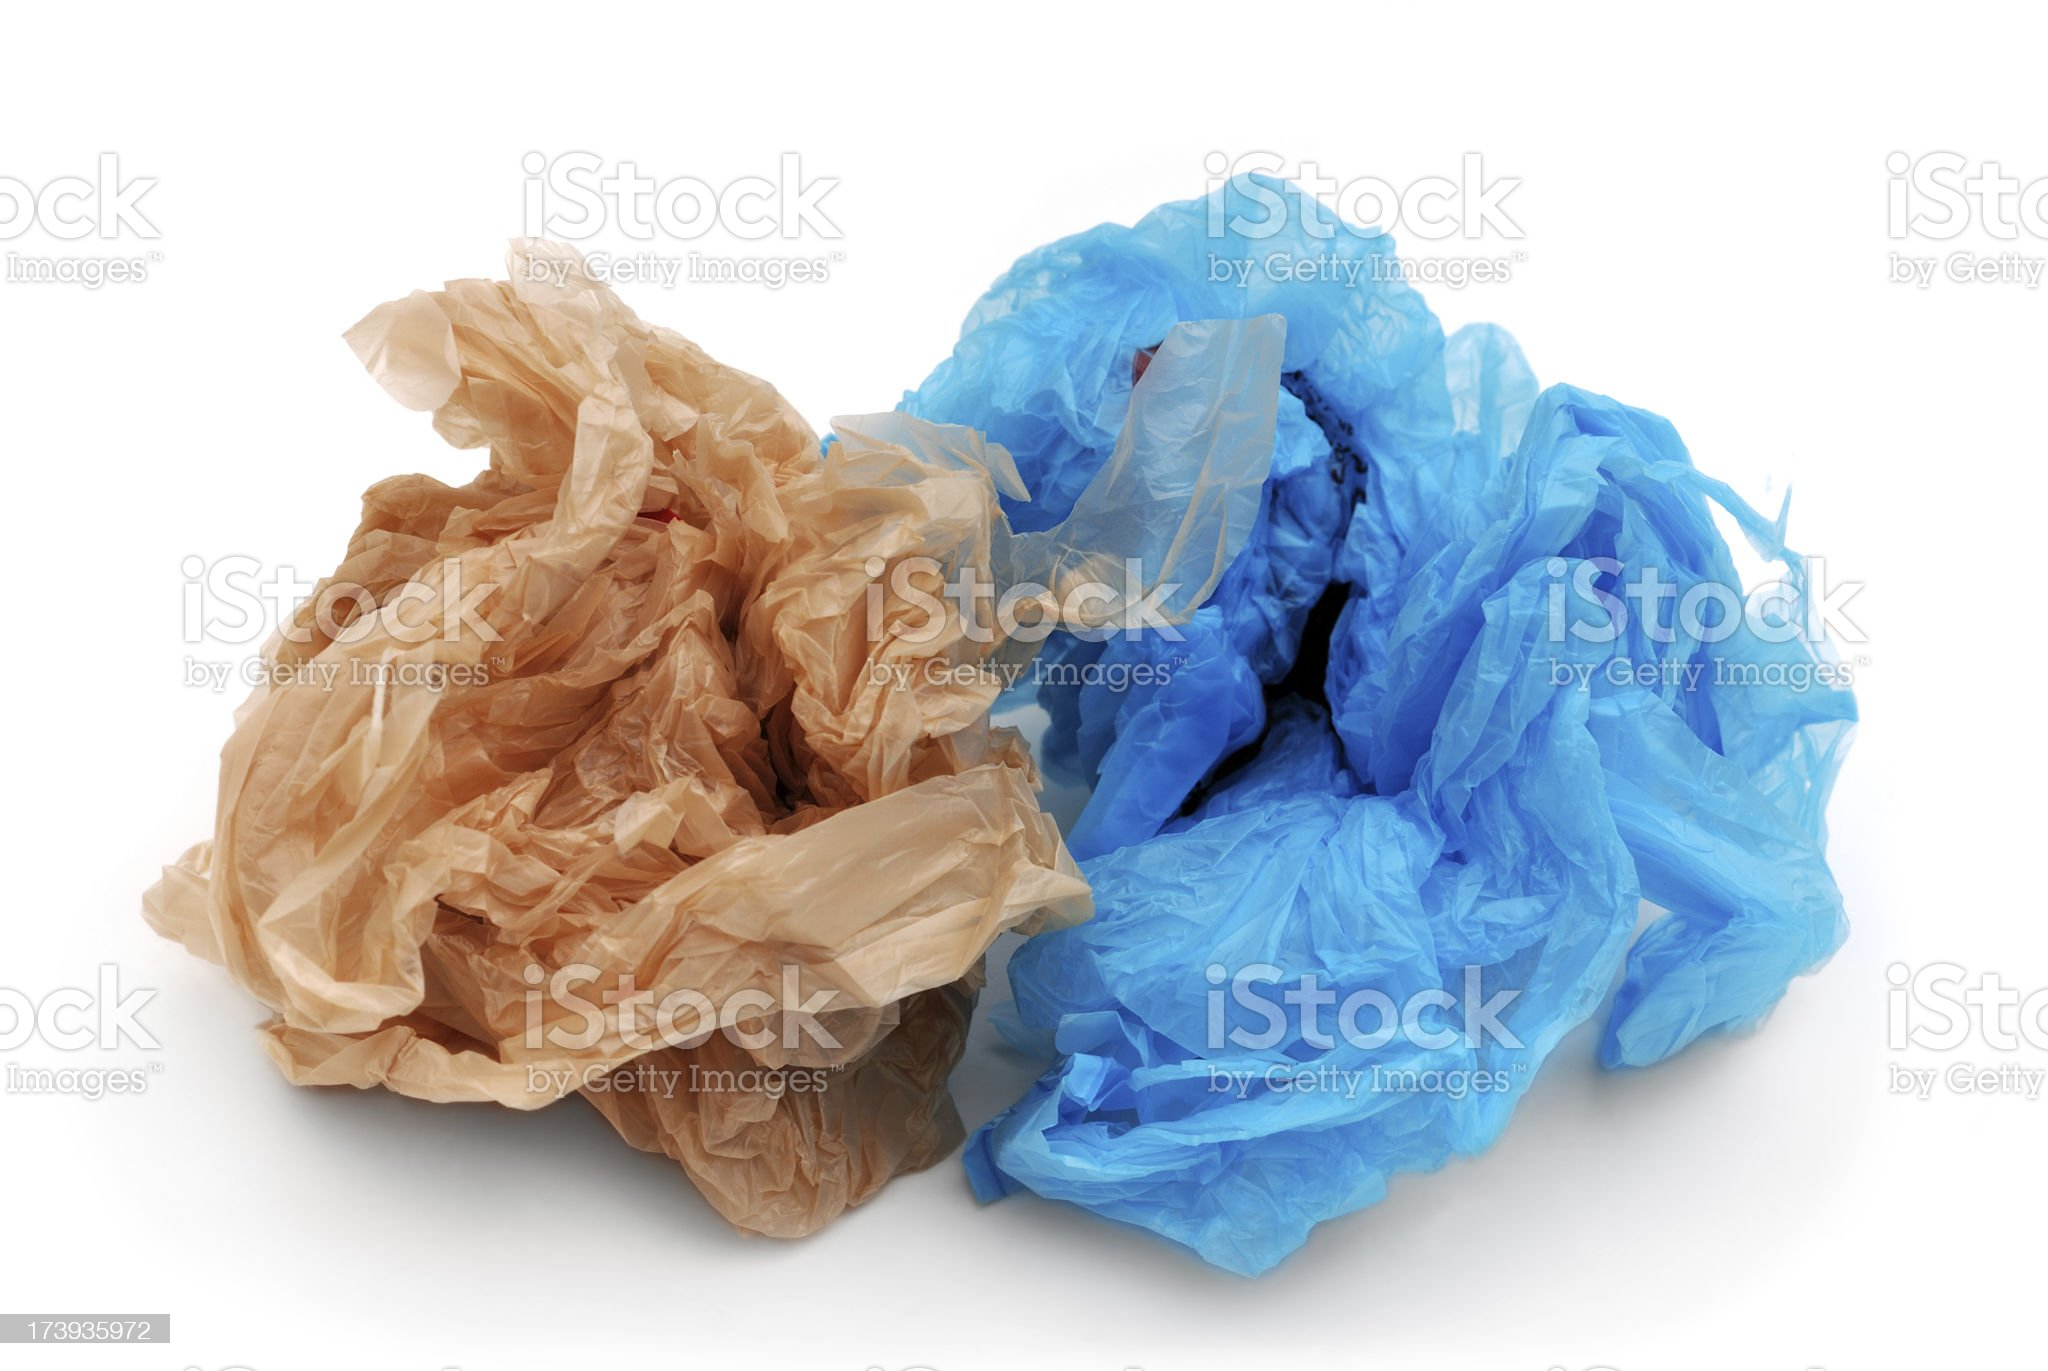 Blue and brown plastic grocery bags royalty-free stock photo